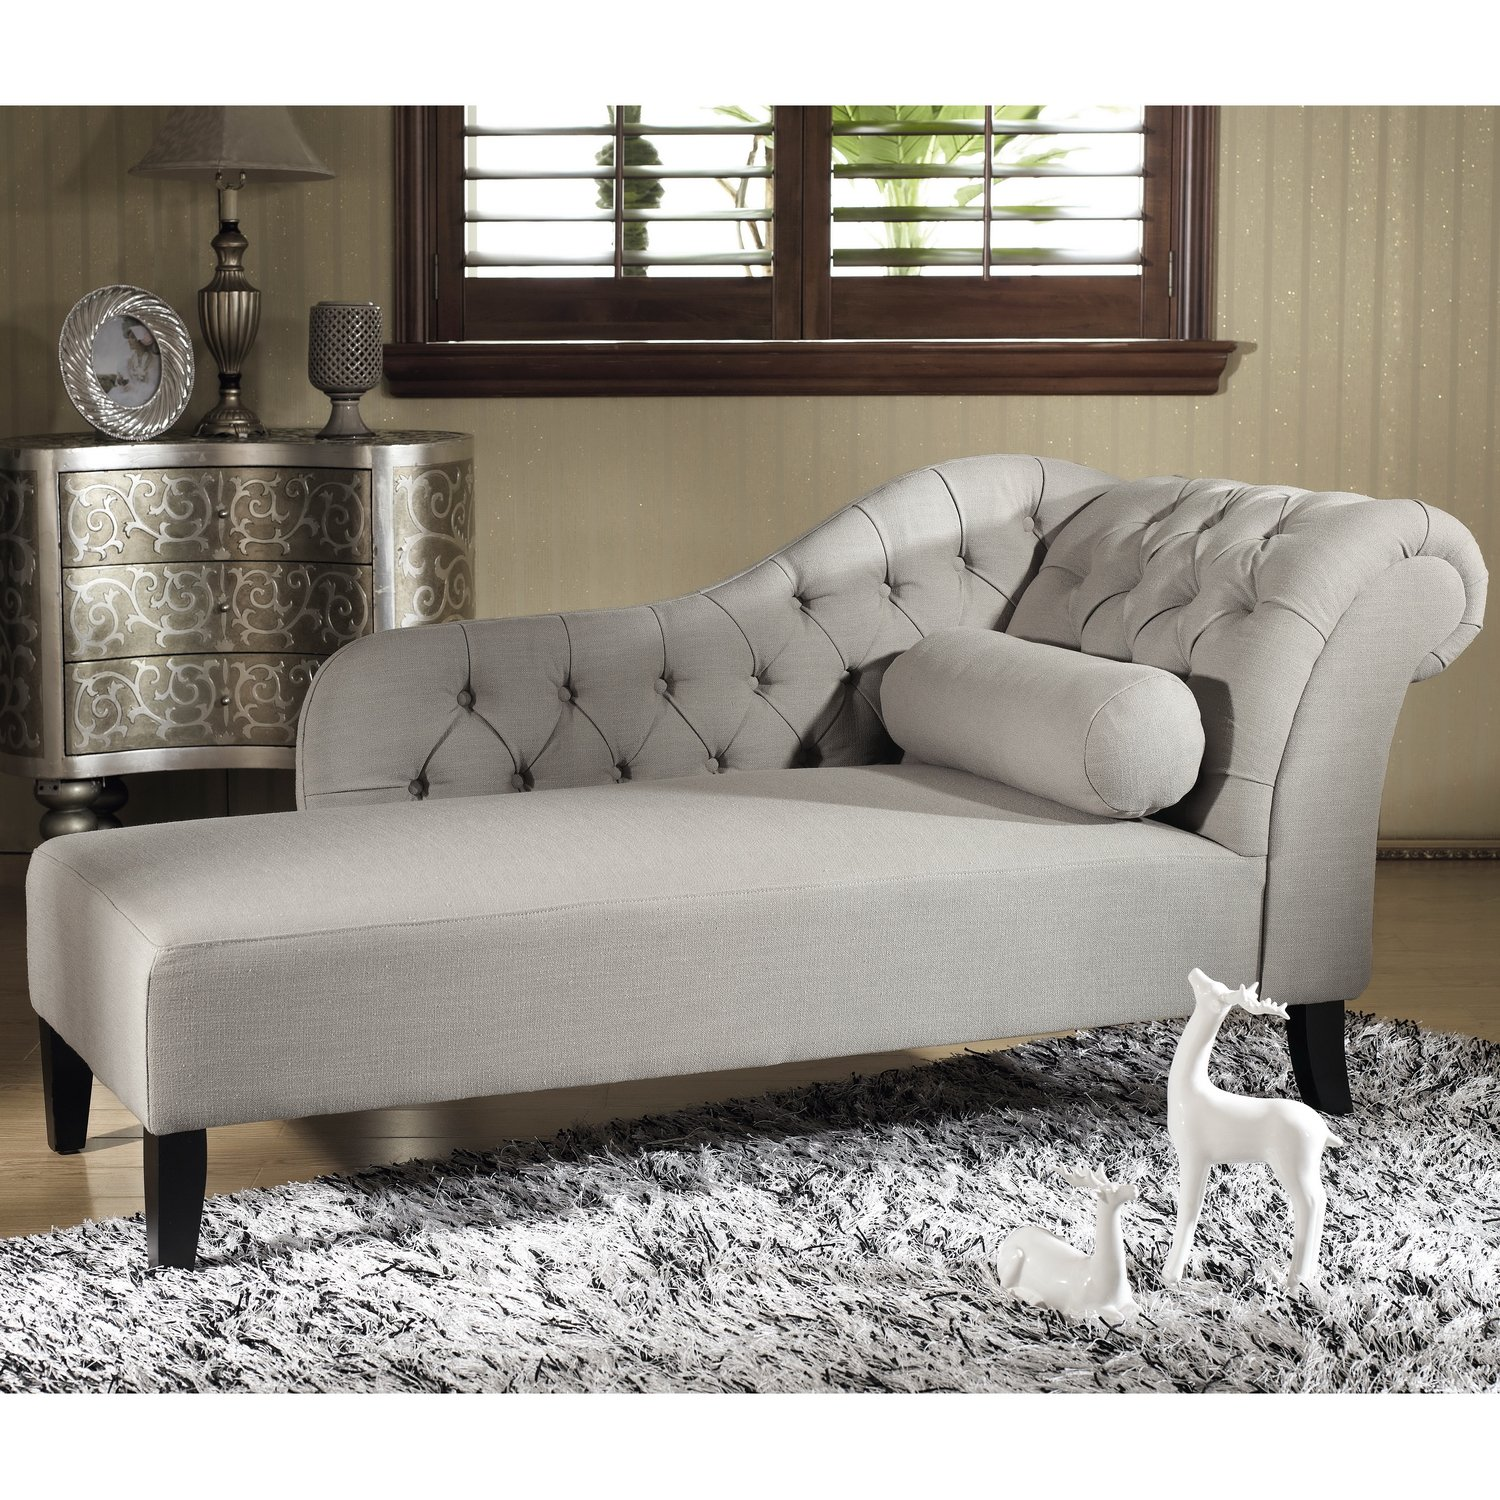 muffin modular loaf cuddle with cuddlemuffin gray sofa chaise products